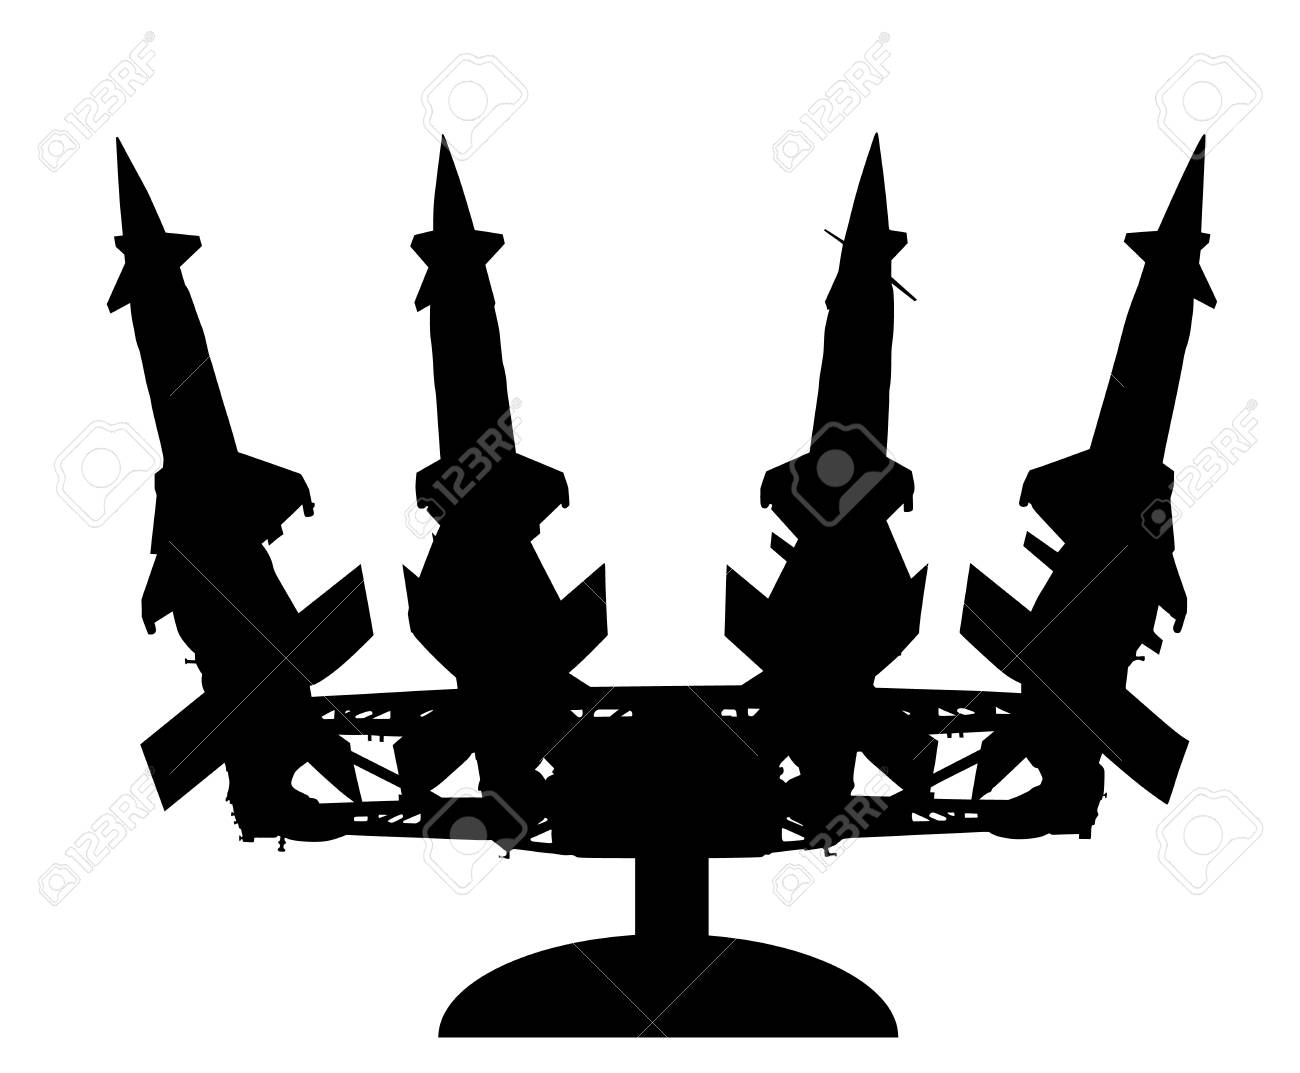 Artillery rocket launcher vector silhouette illustration. Rocket carrier platform with nuclear bomb. Nuclear test, war treat. Bomb air projectile attack. Powerful weapons. War destruction. - 96202280